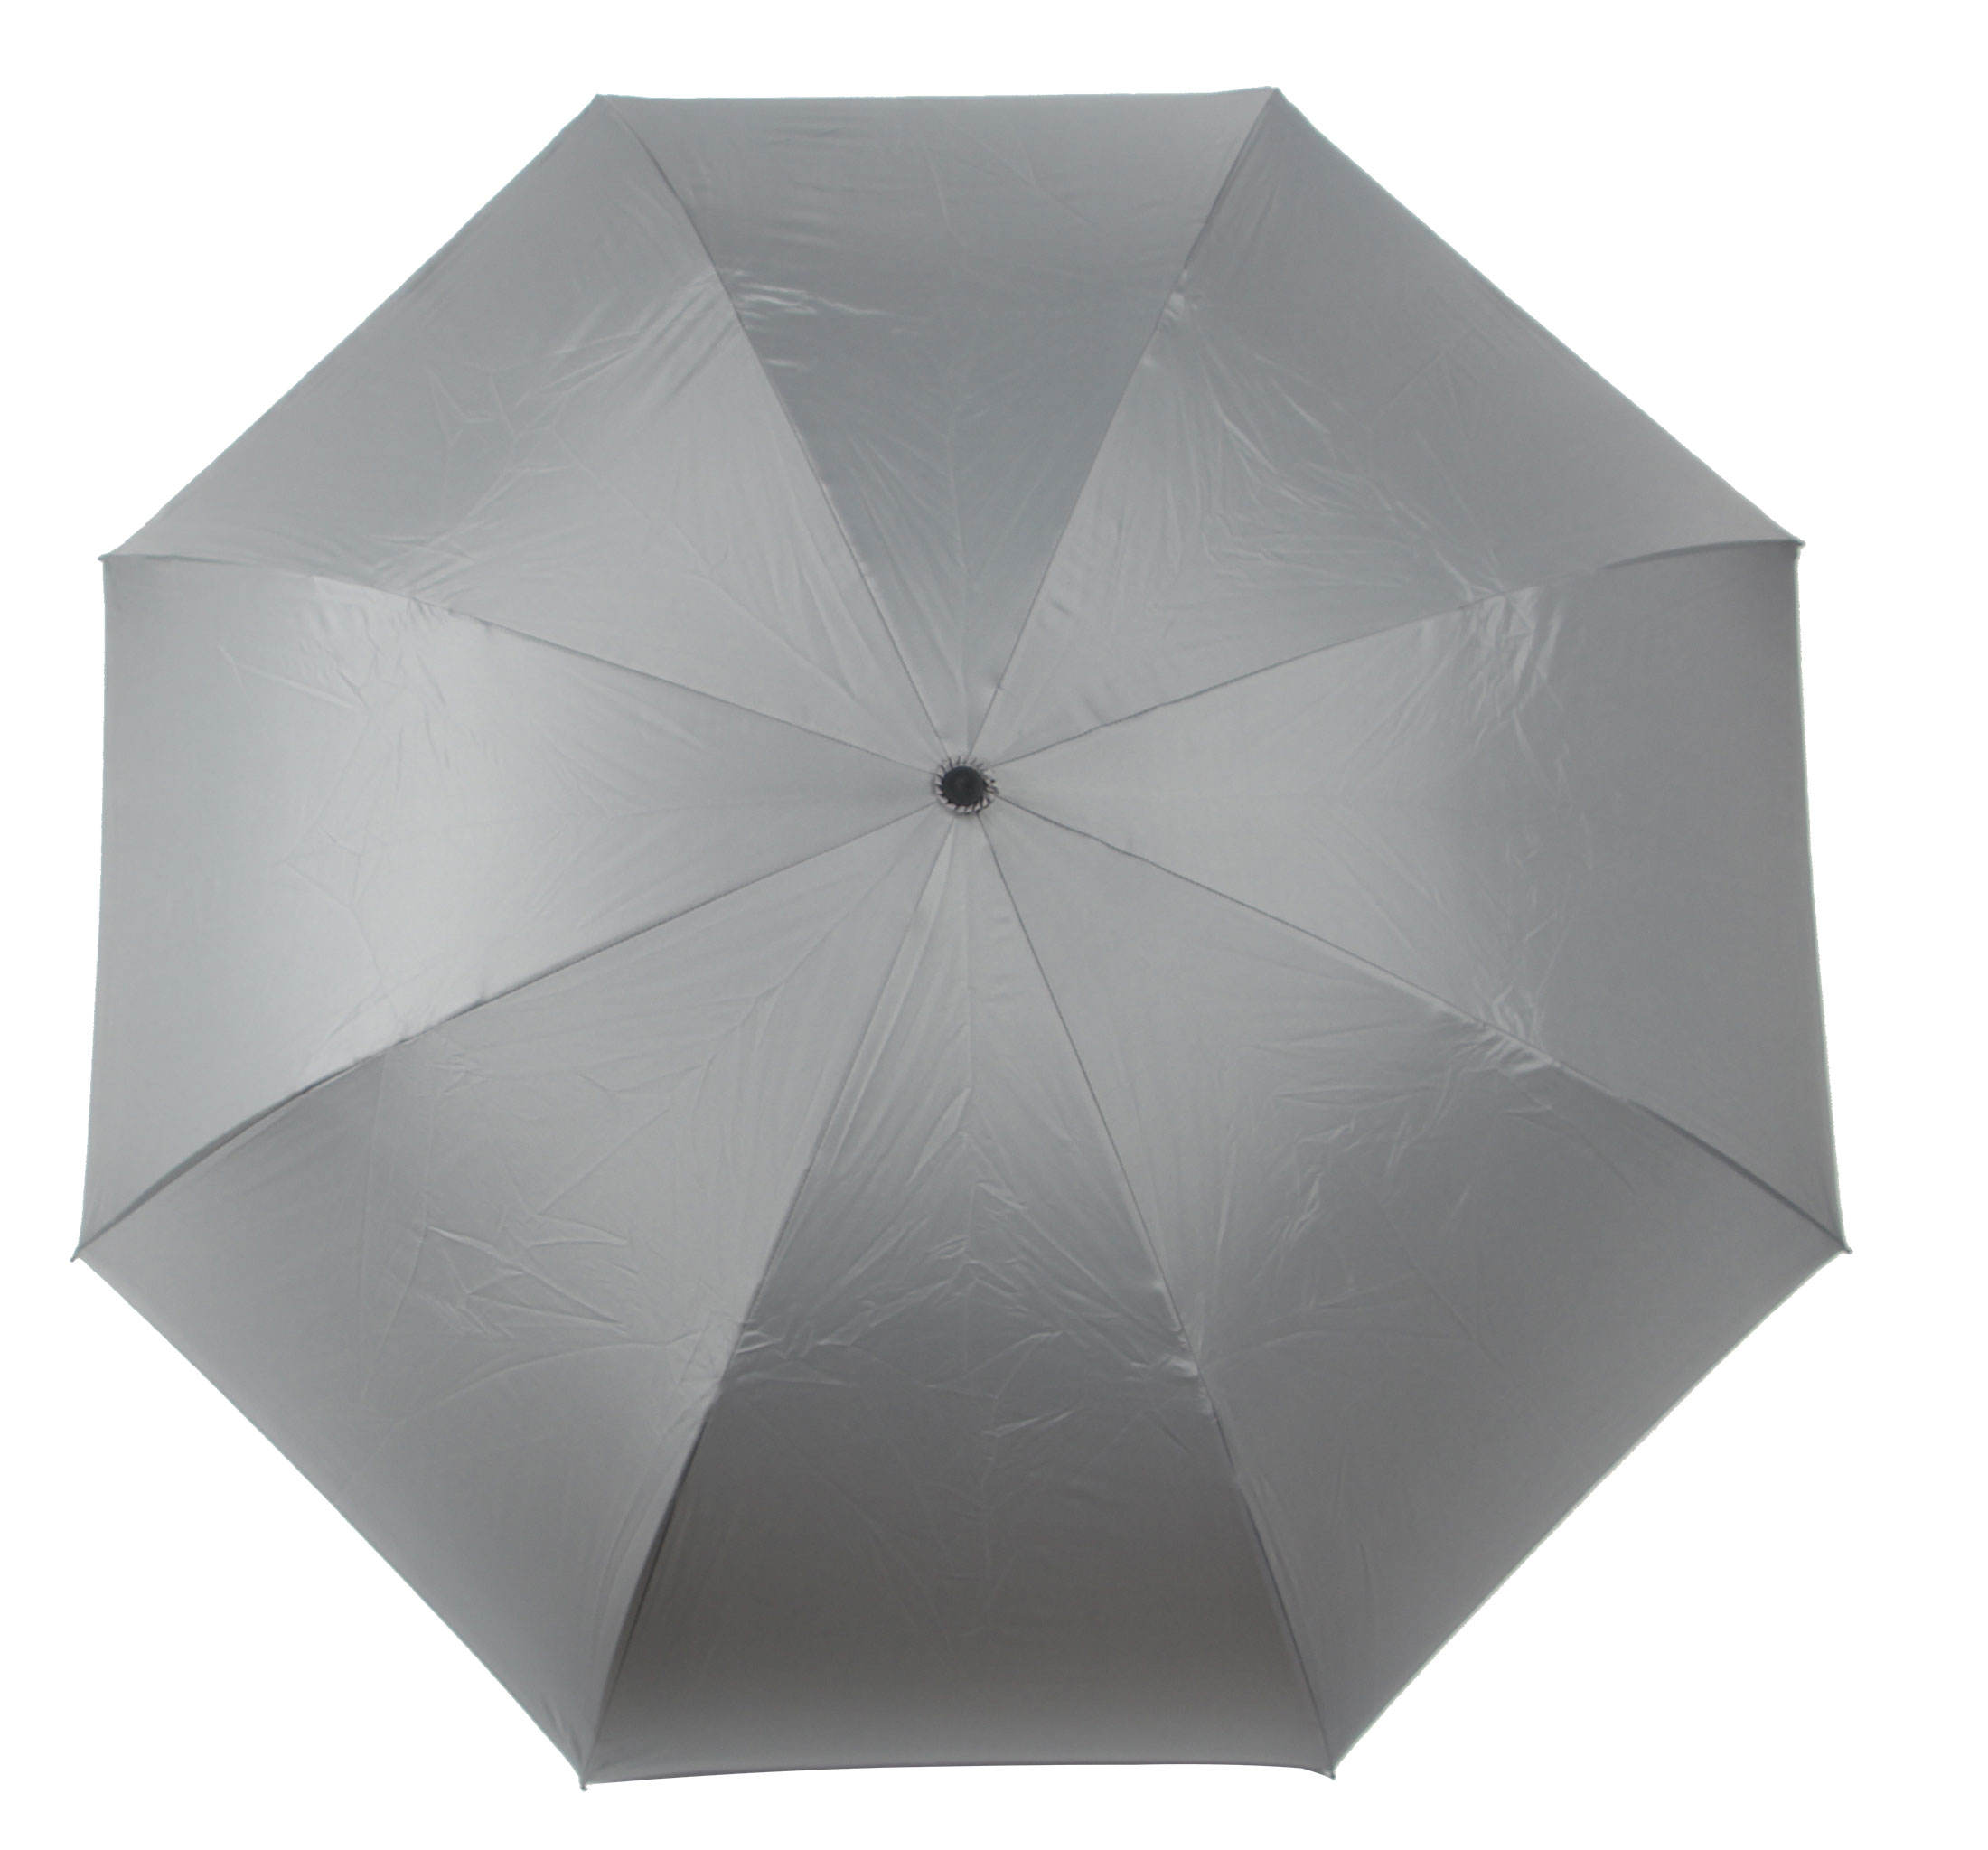 Windproof UV Proof Waterproof Car Umbrella